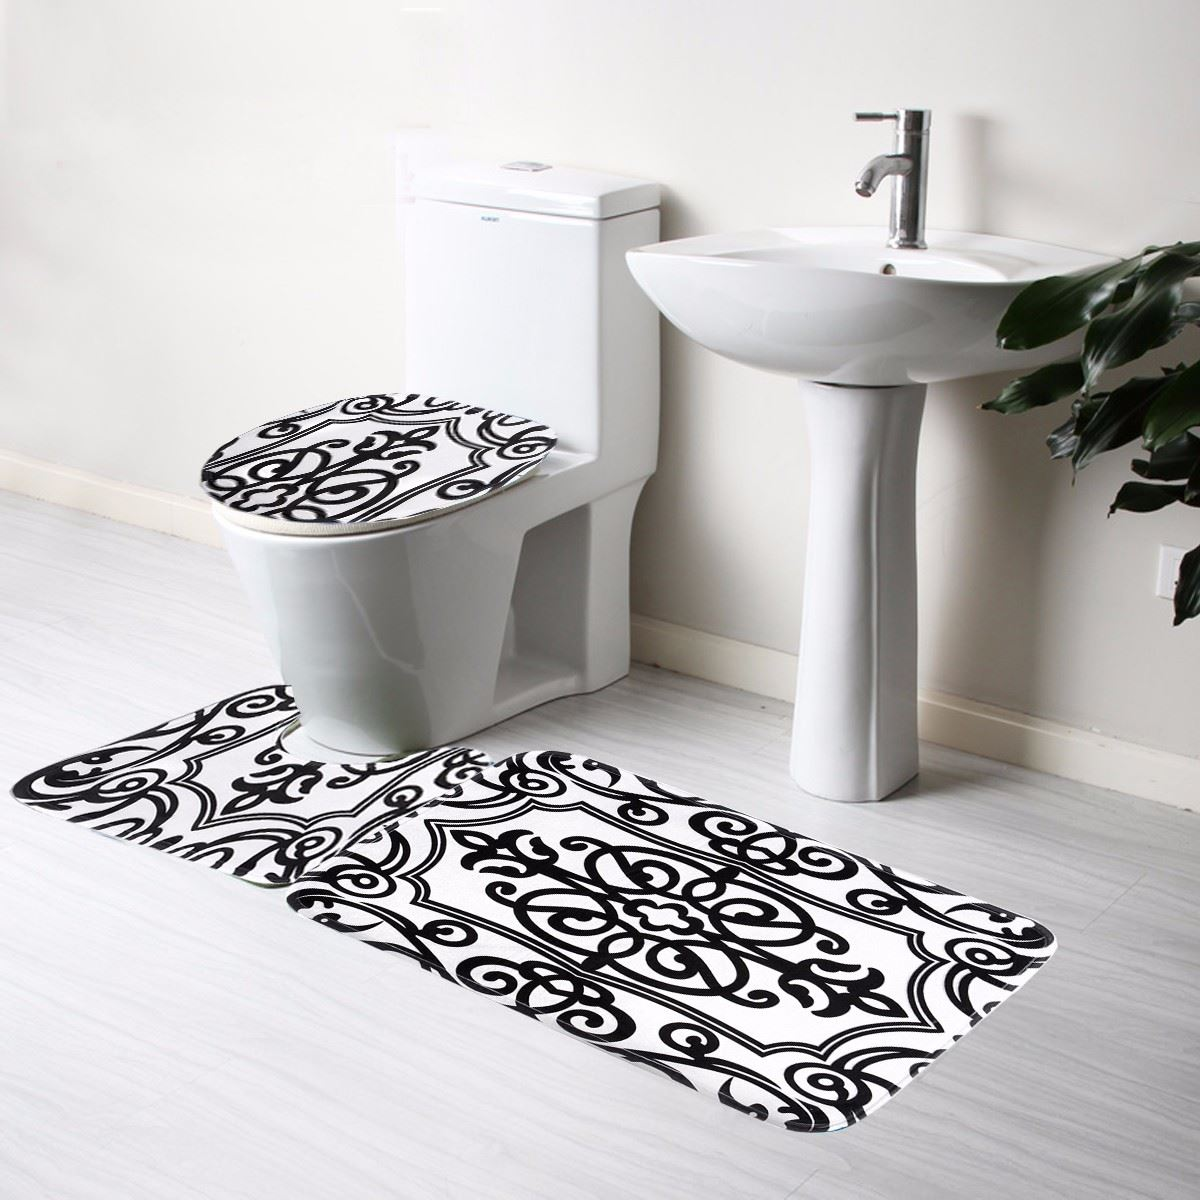 of red white designs um bathroom setting ways for different mat mats scenic size rug and black rugs bath